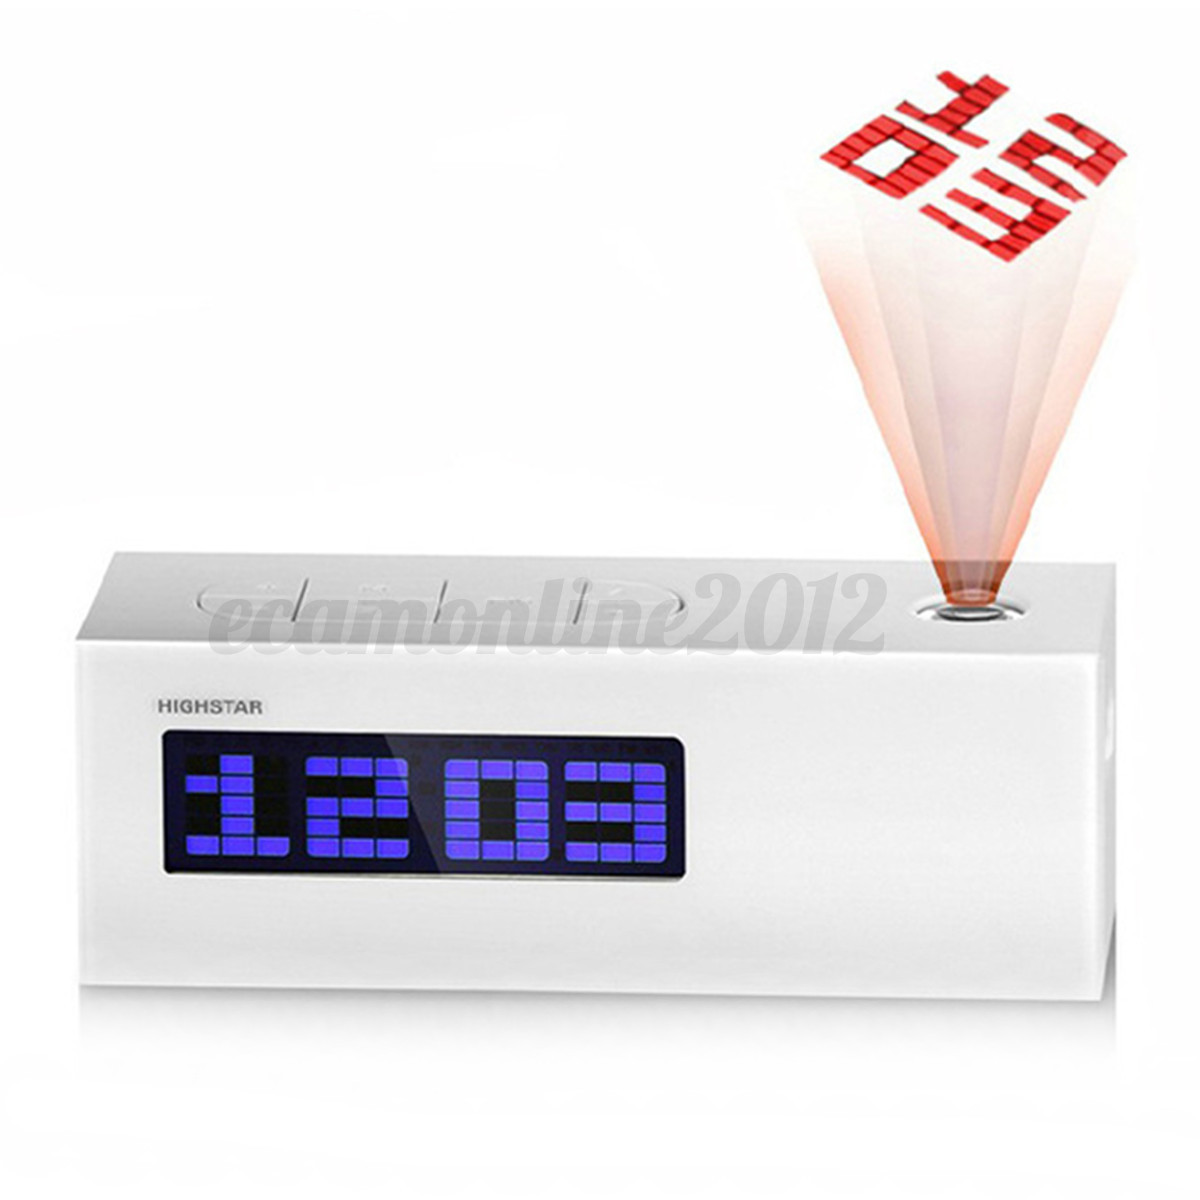 lexibook fm digital radio alarm clock time projector frozen jumper radio alarm clock best. Black Bedroom Furniture Sets. Home Design Ideas